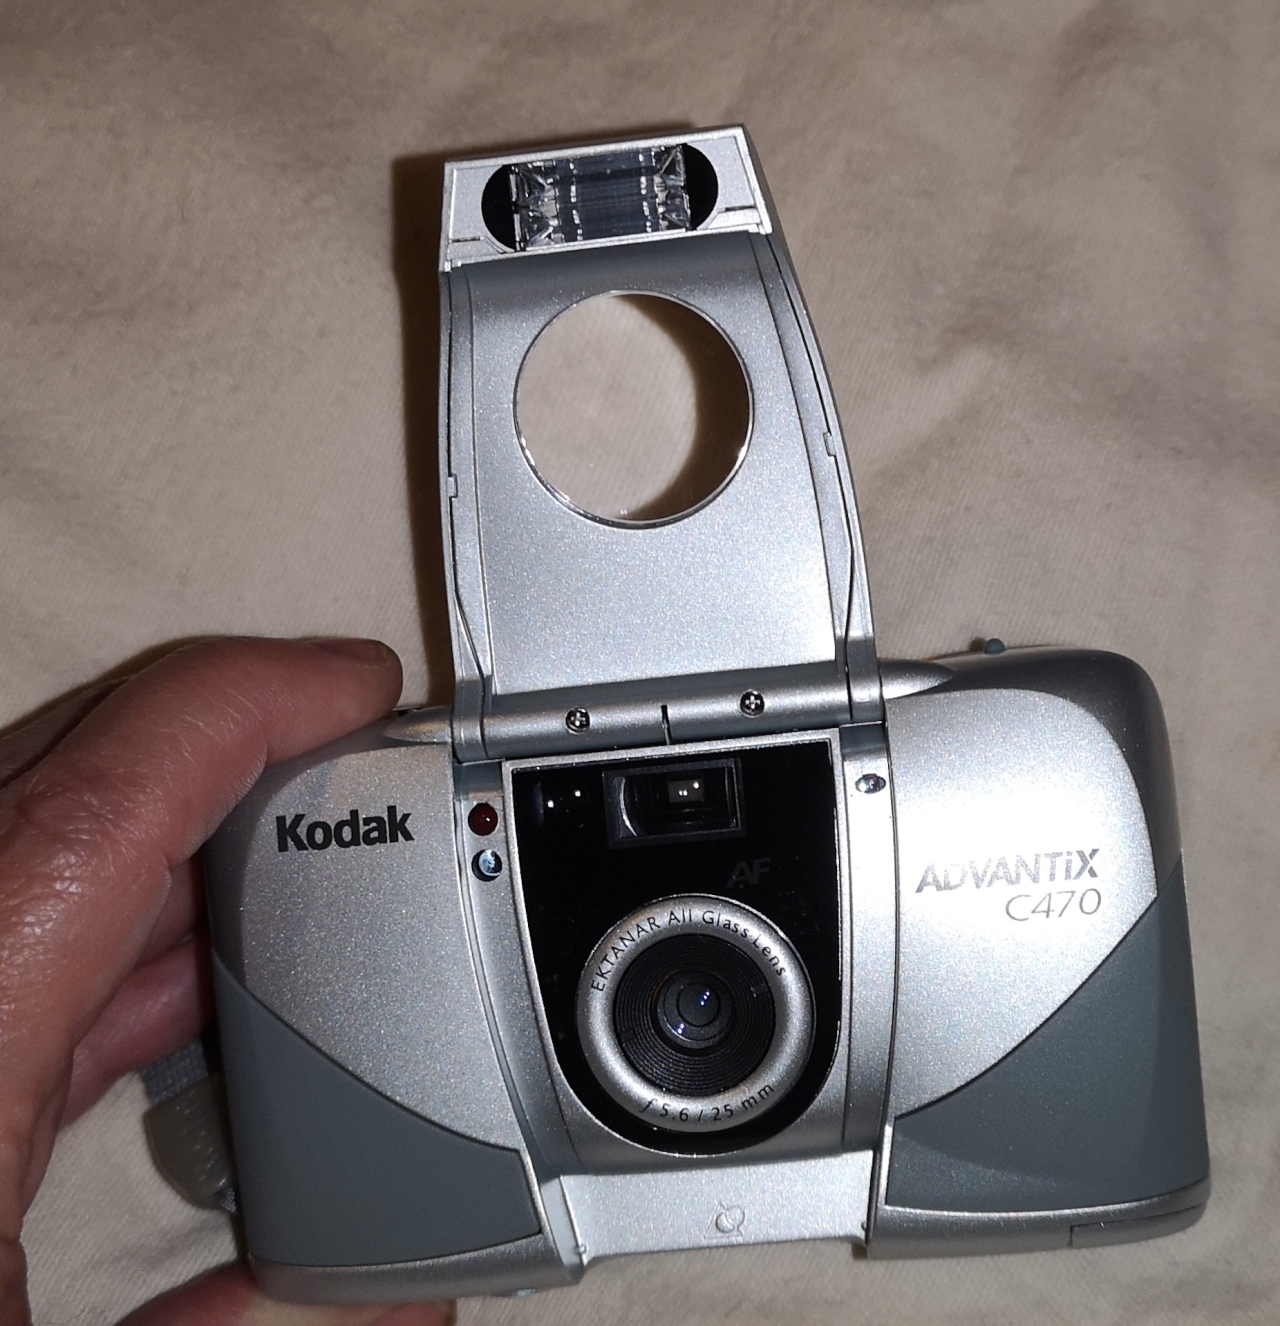 Kodak Advantix C470 (aps)